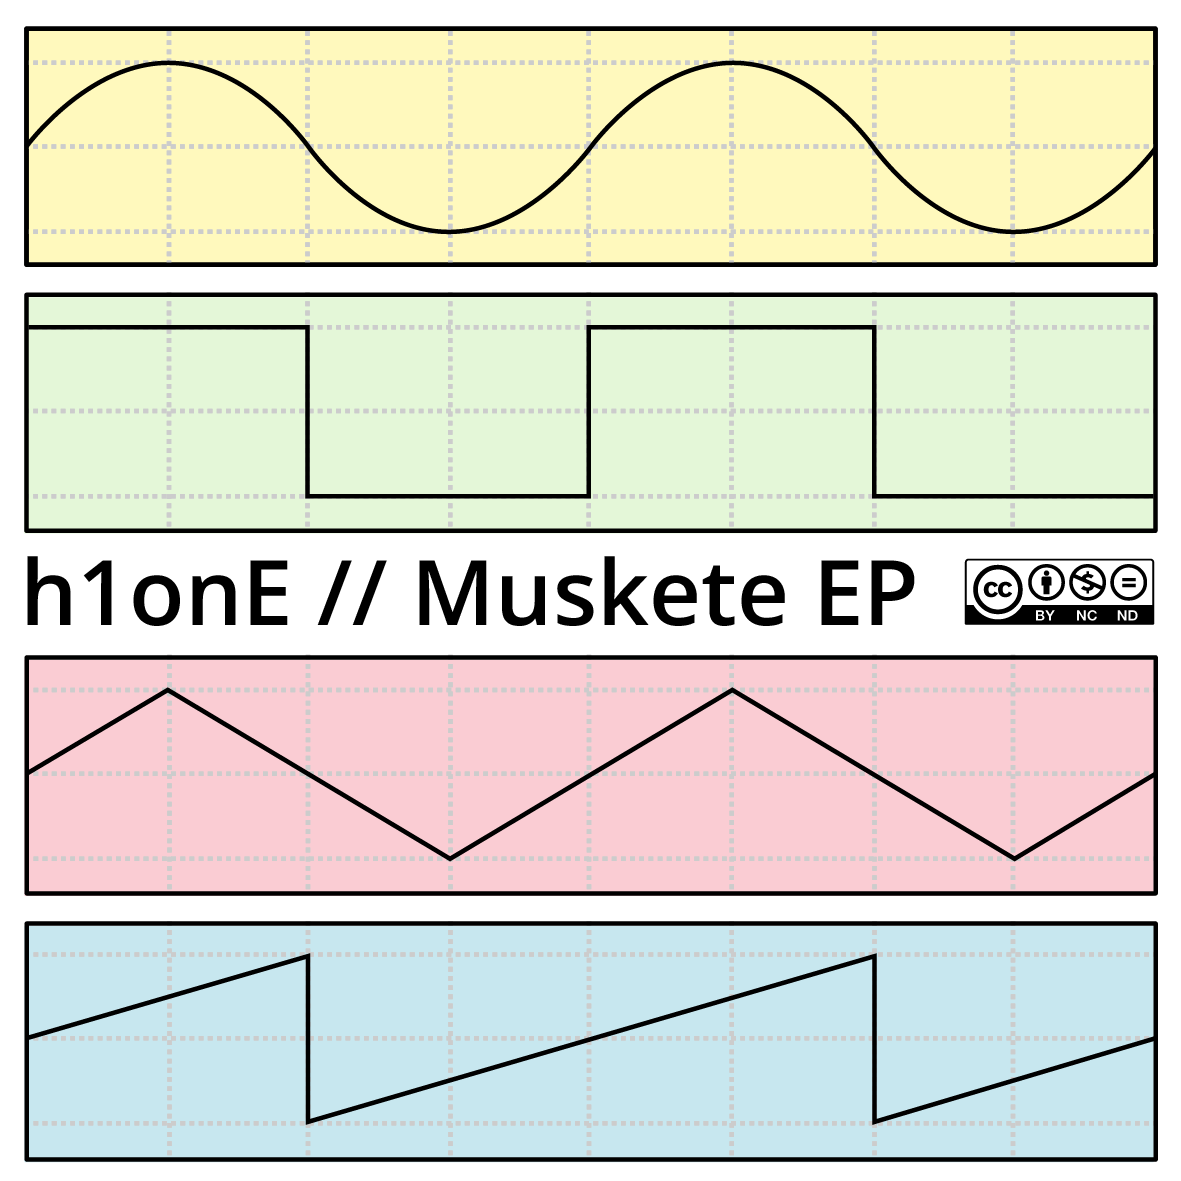 h1onE - Muskete EP